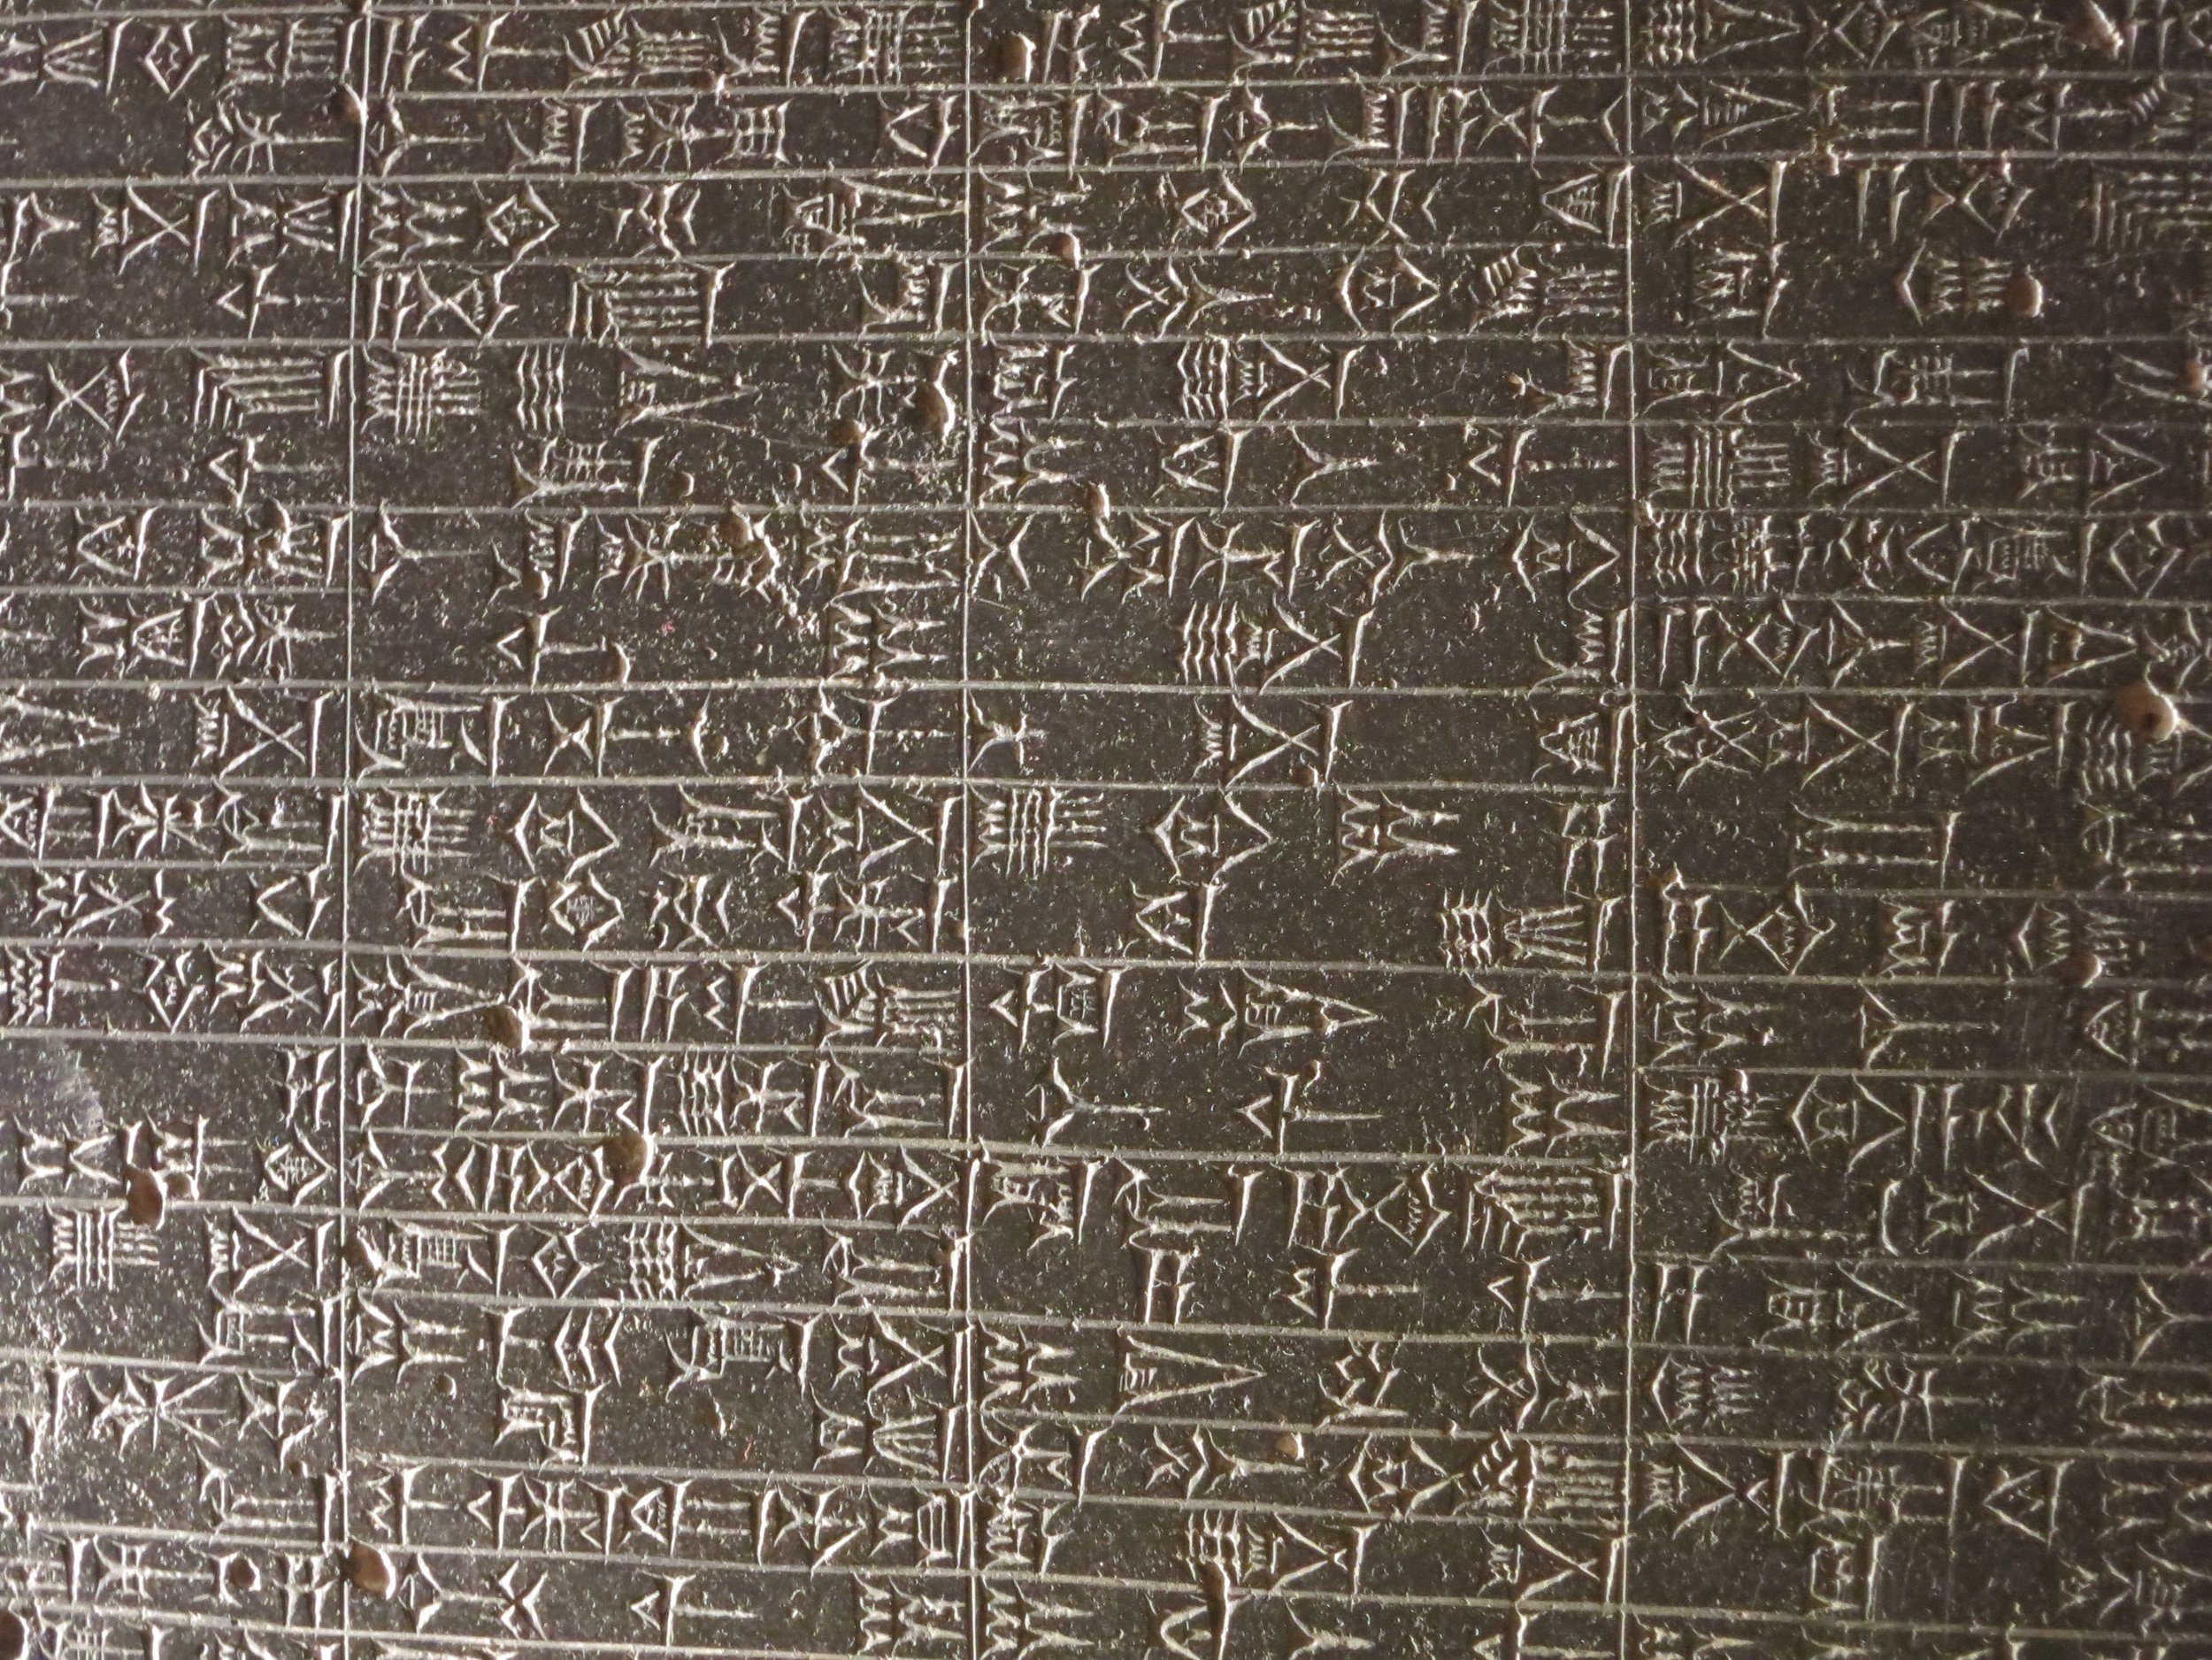 These inscription in Akkadian cuneiform are on display at the Louvre in Paris.   John S. Y. Lee/Flickr  (CC BY-SA 2.0)